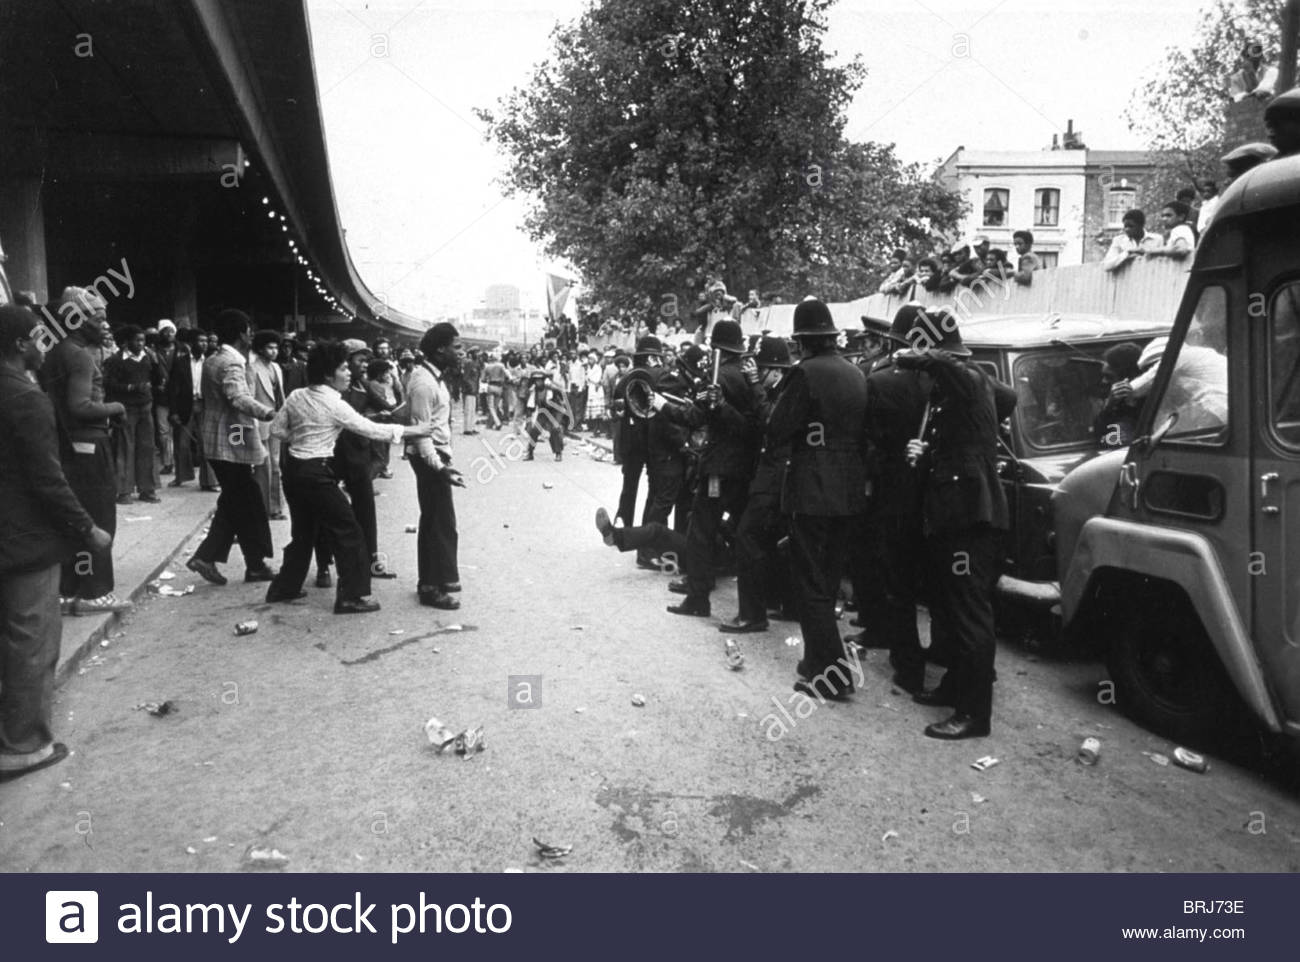 / ( 60231g ) RIOTING AT THE CARNIVAL NOTTING HILL CARNIVAL, LONDON 1976 - Stock Image